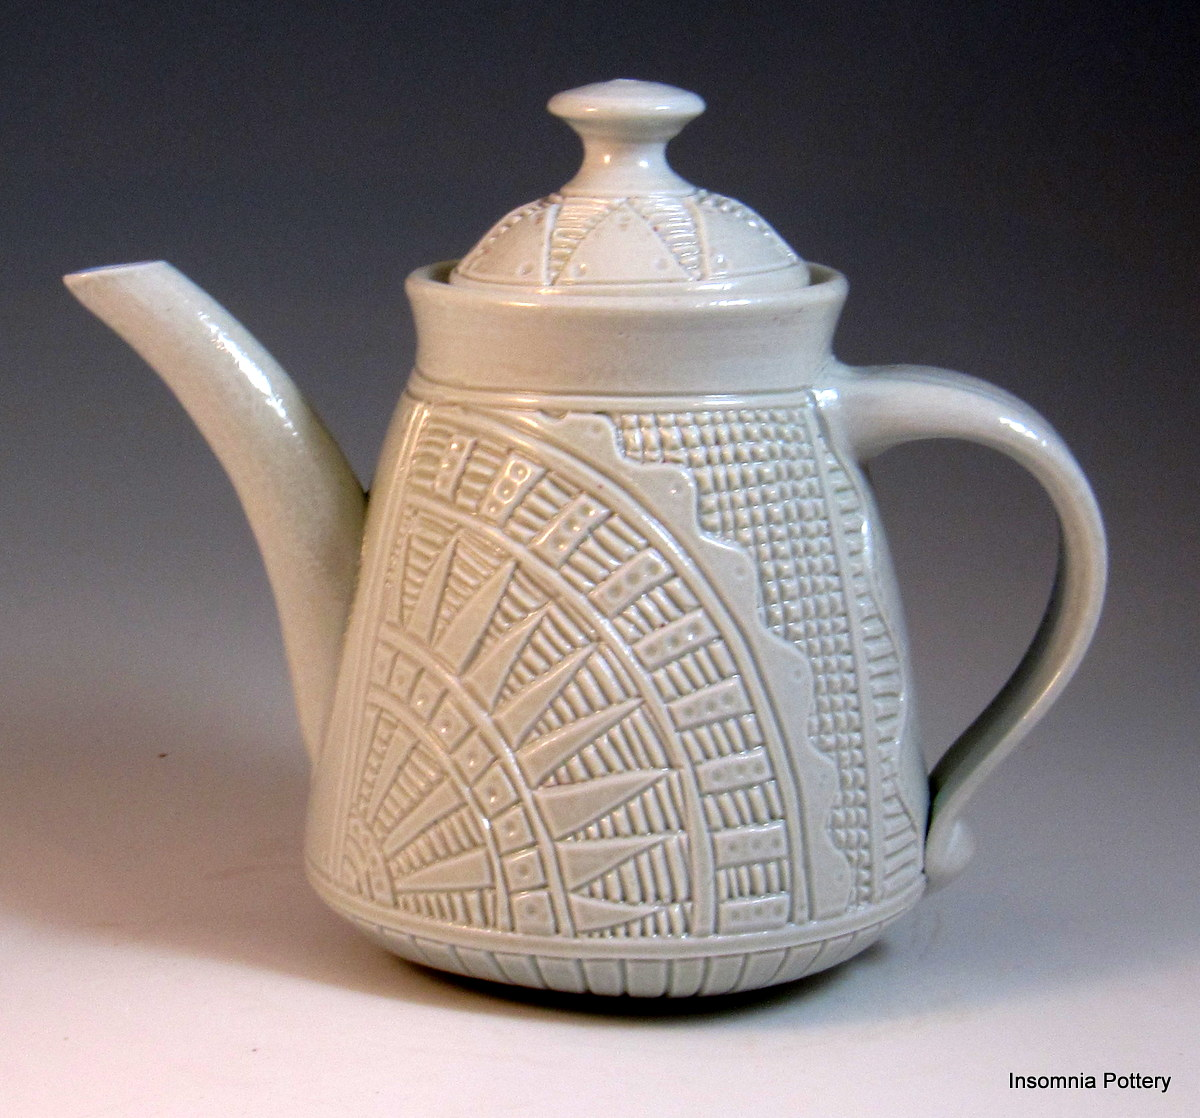 Making Tea In A Teapot Making White Salt Fired Porcelain Insomnia Pottery